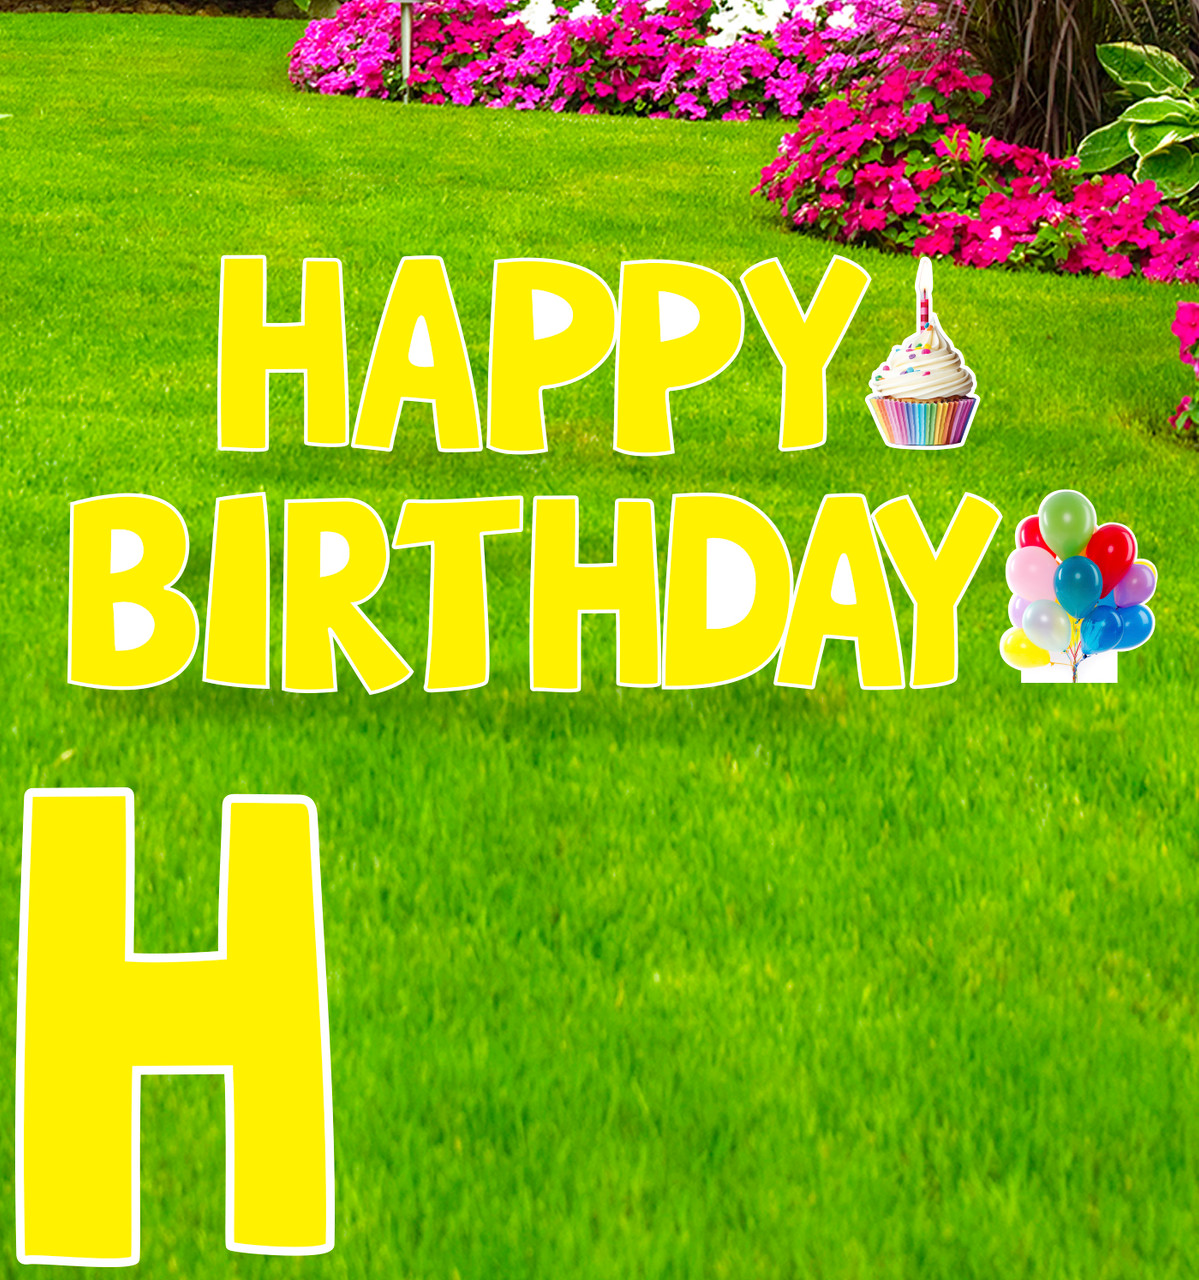 Coroplast Yellow Paper Happy Birthday yard signs with background.